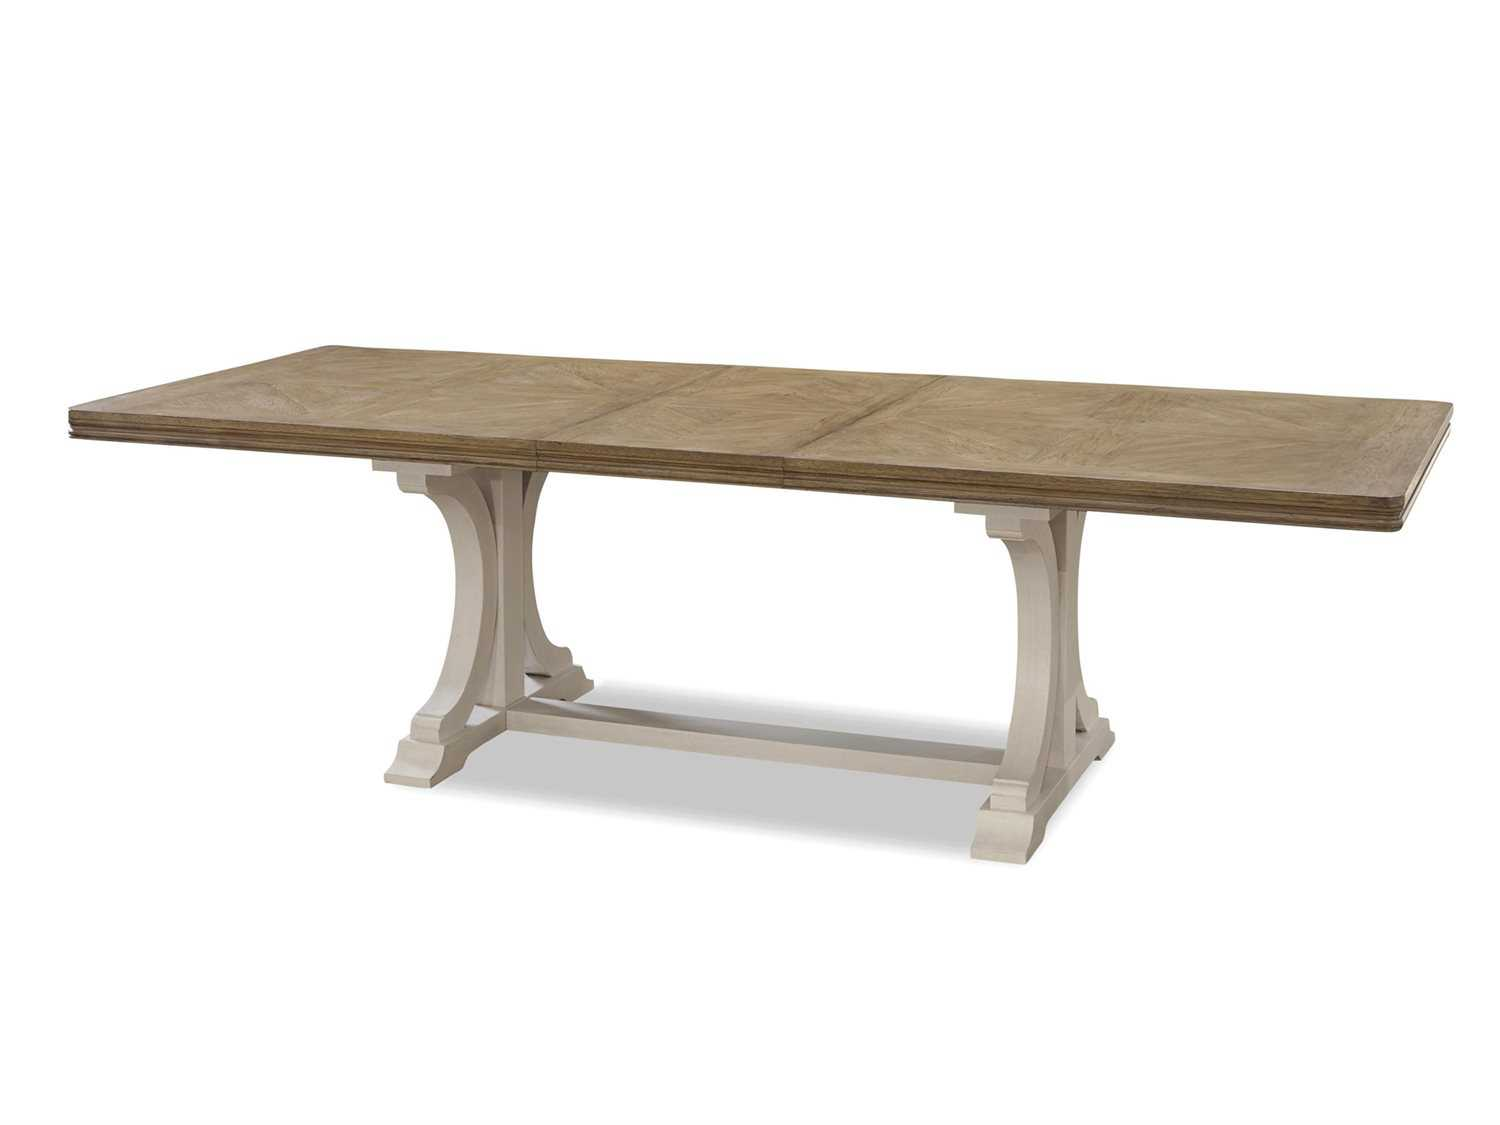 Universal furniture moderne muse 108 39 39 l x 42 39 39 w for 108 inch dining room table